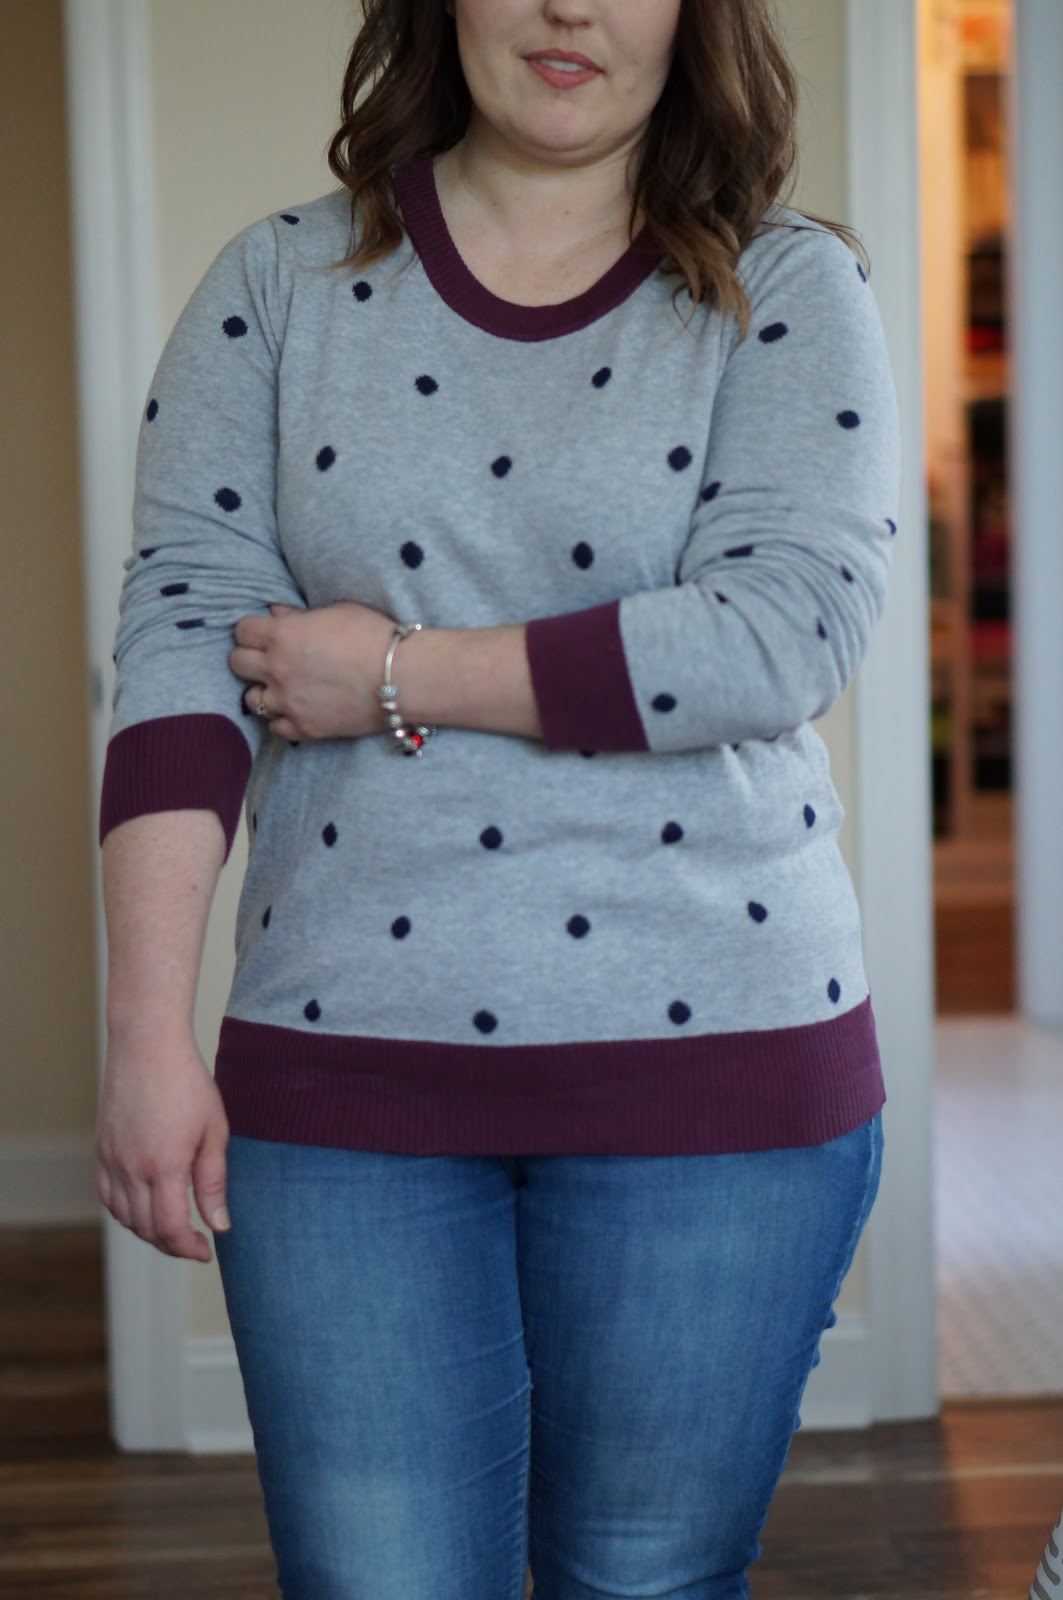 STITCH FIX | PRINCESS KATE FASHION by North Carolina style blogger Rebecca Lately